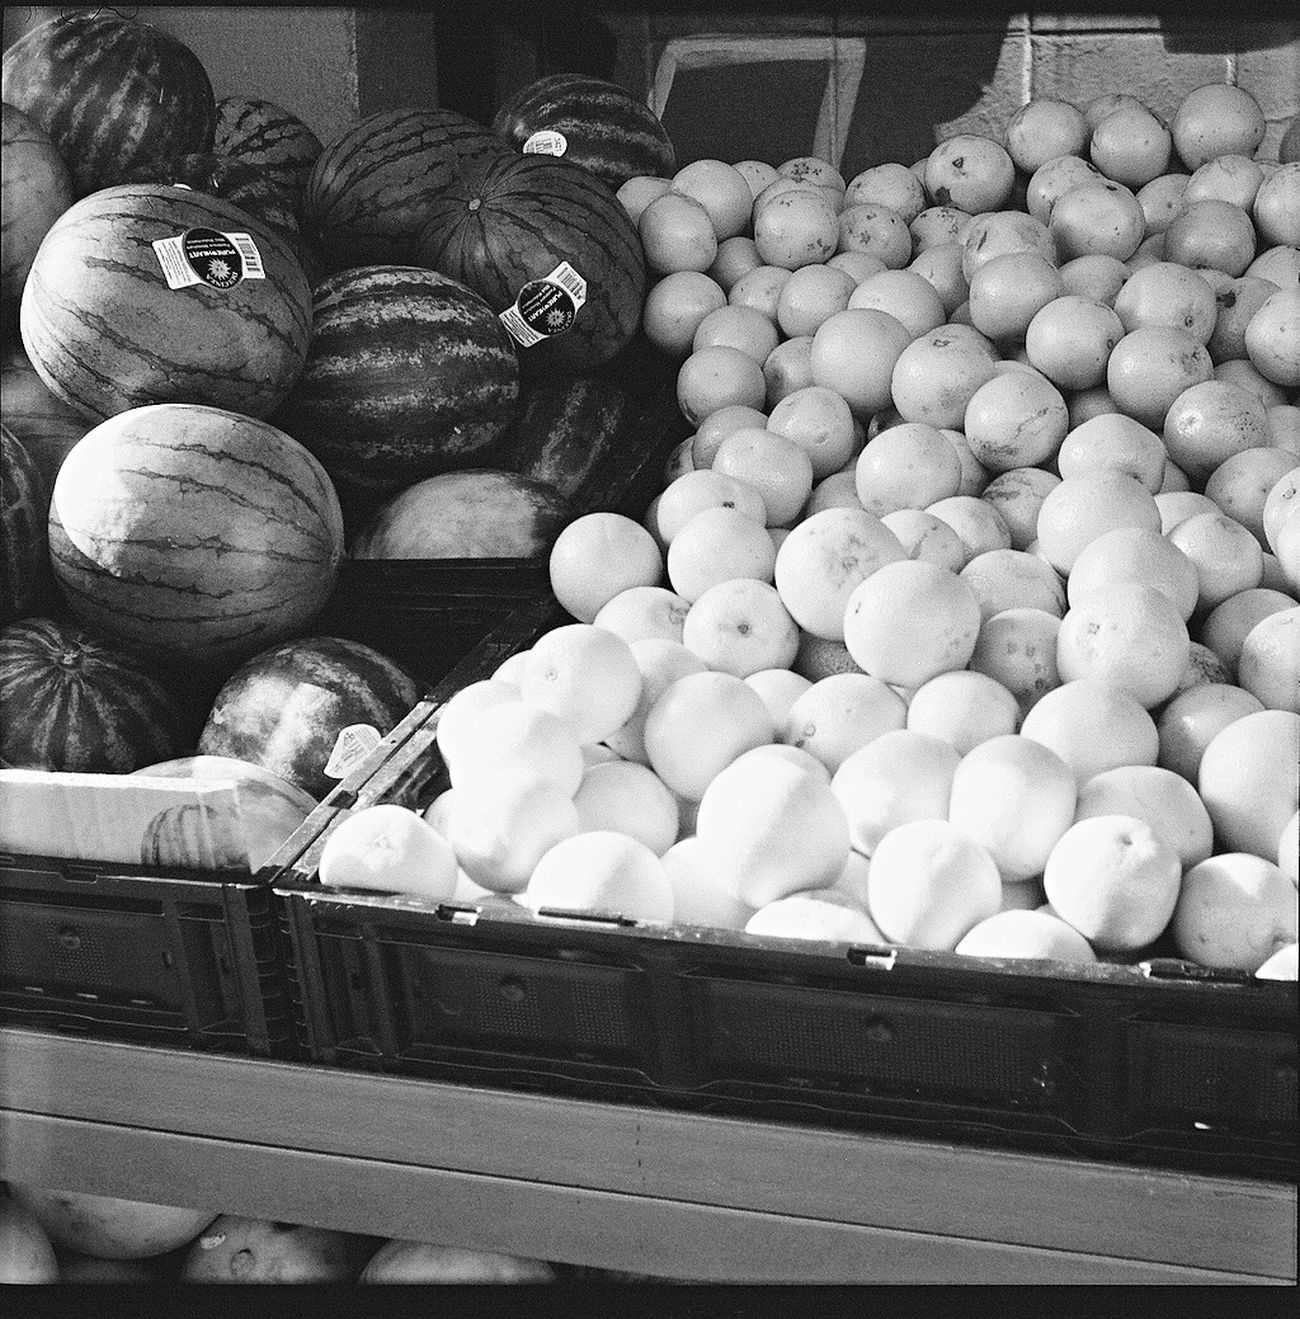 Food Vegetable Market Market Stall Variation Belair Panorama Large Group Of Objects For Sale Koduckgirl Blk N Wht 6x6 Square Squash - Vegetable Film